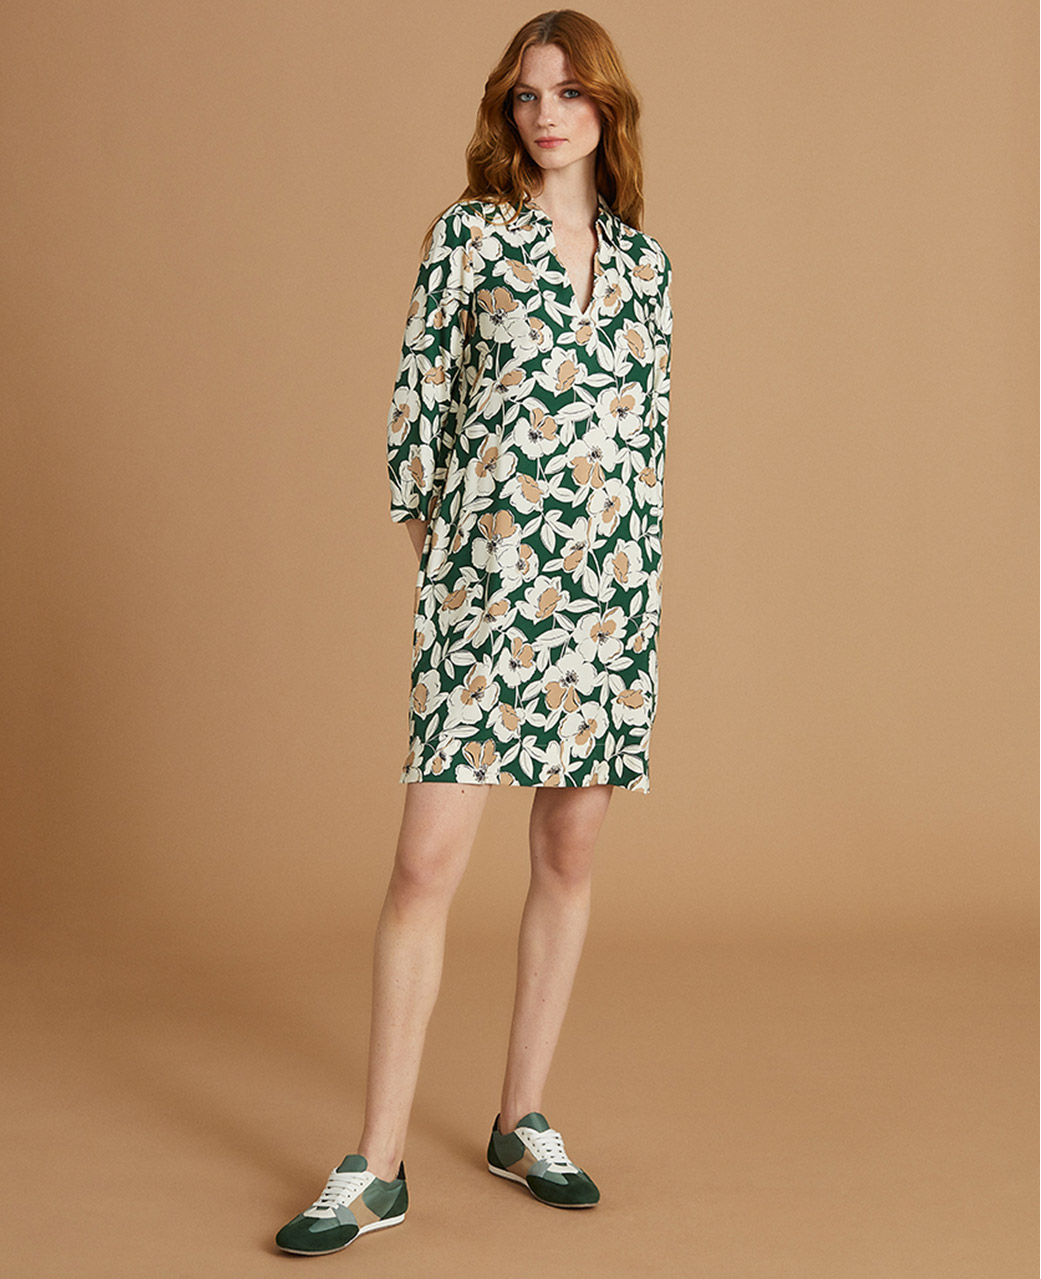 Green Floral Print Tunic Dress Outfit